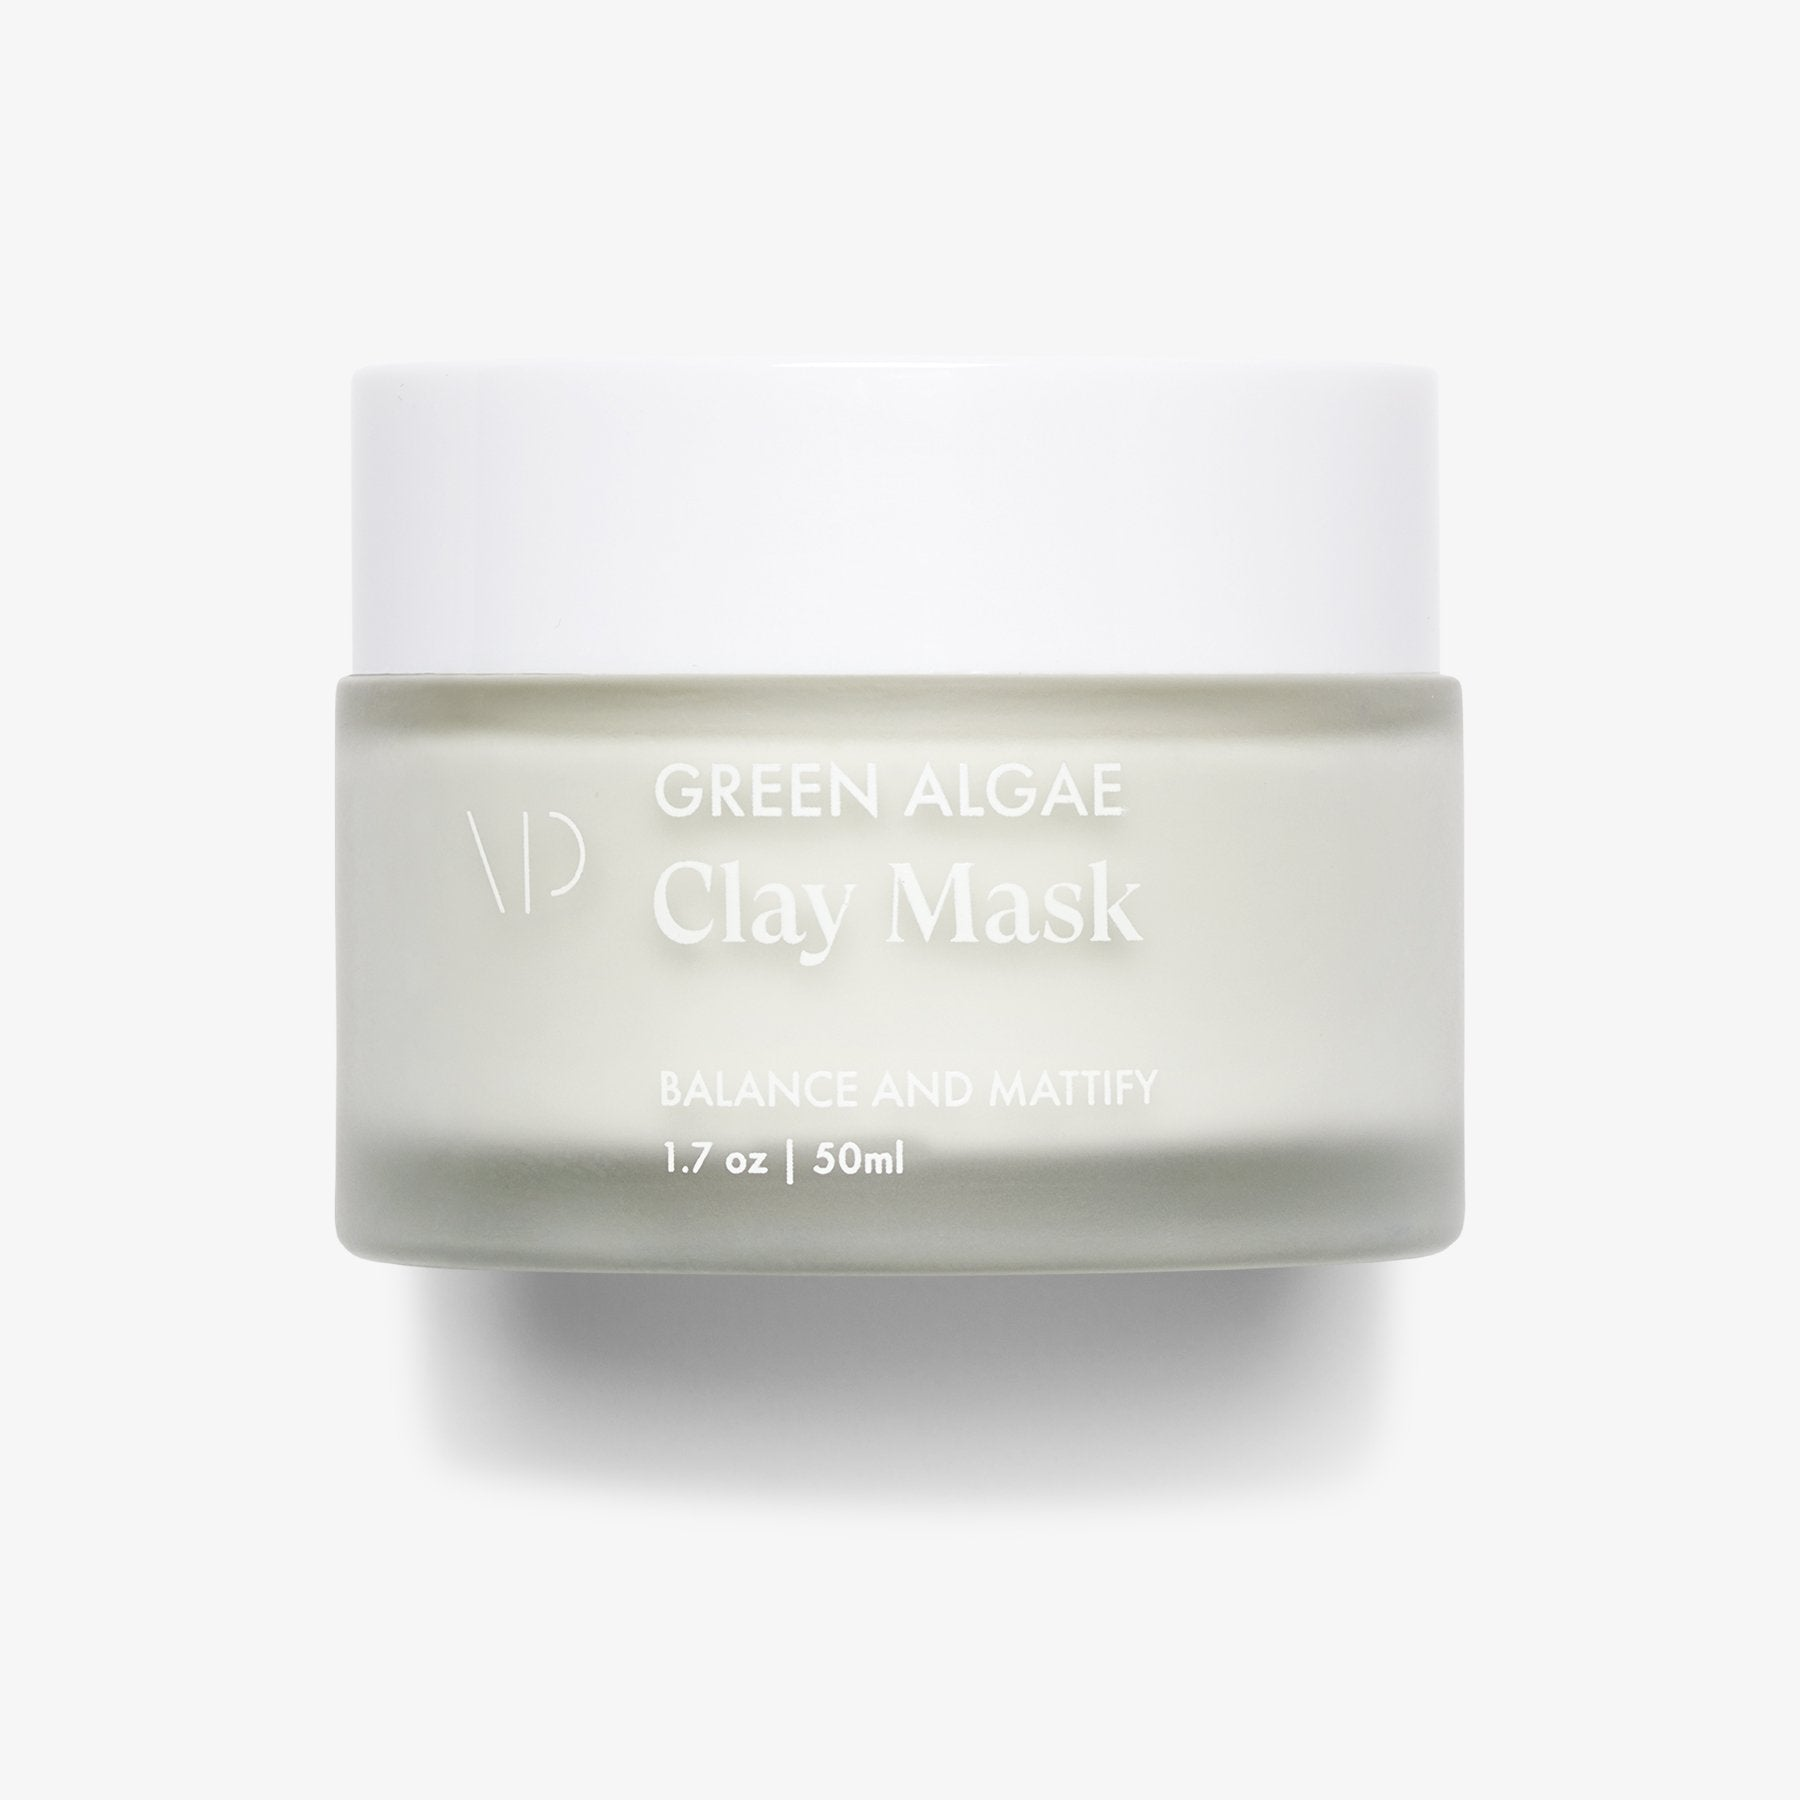 Green Algae Clay Mask | Our Gift To You